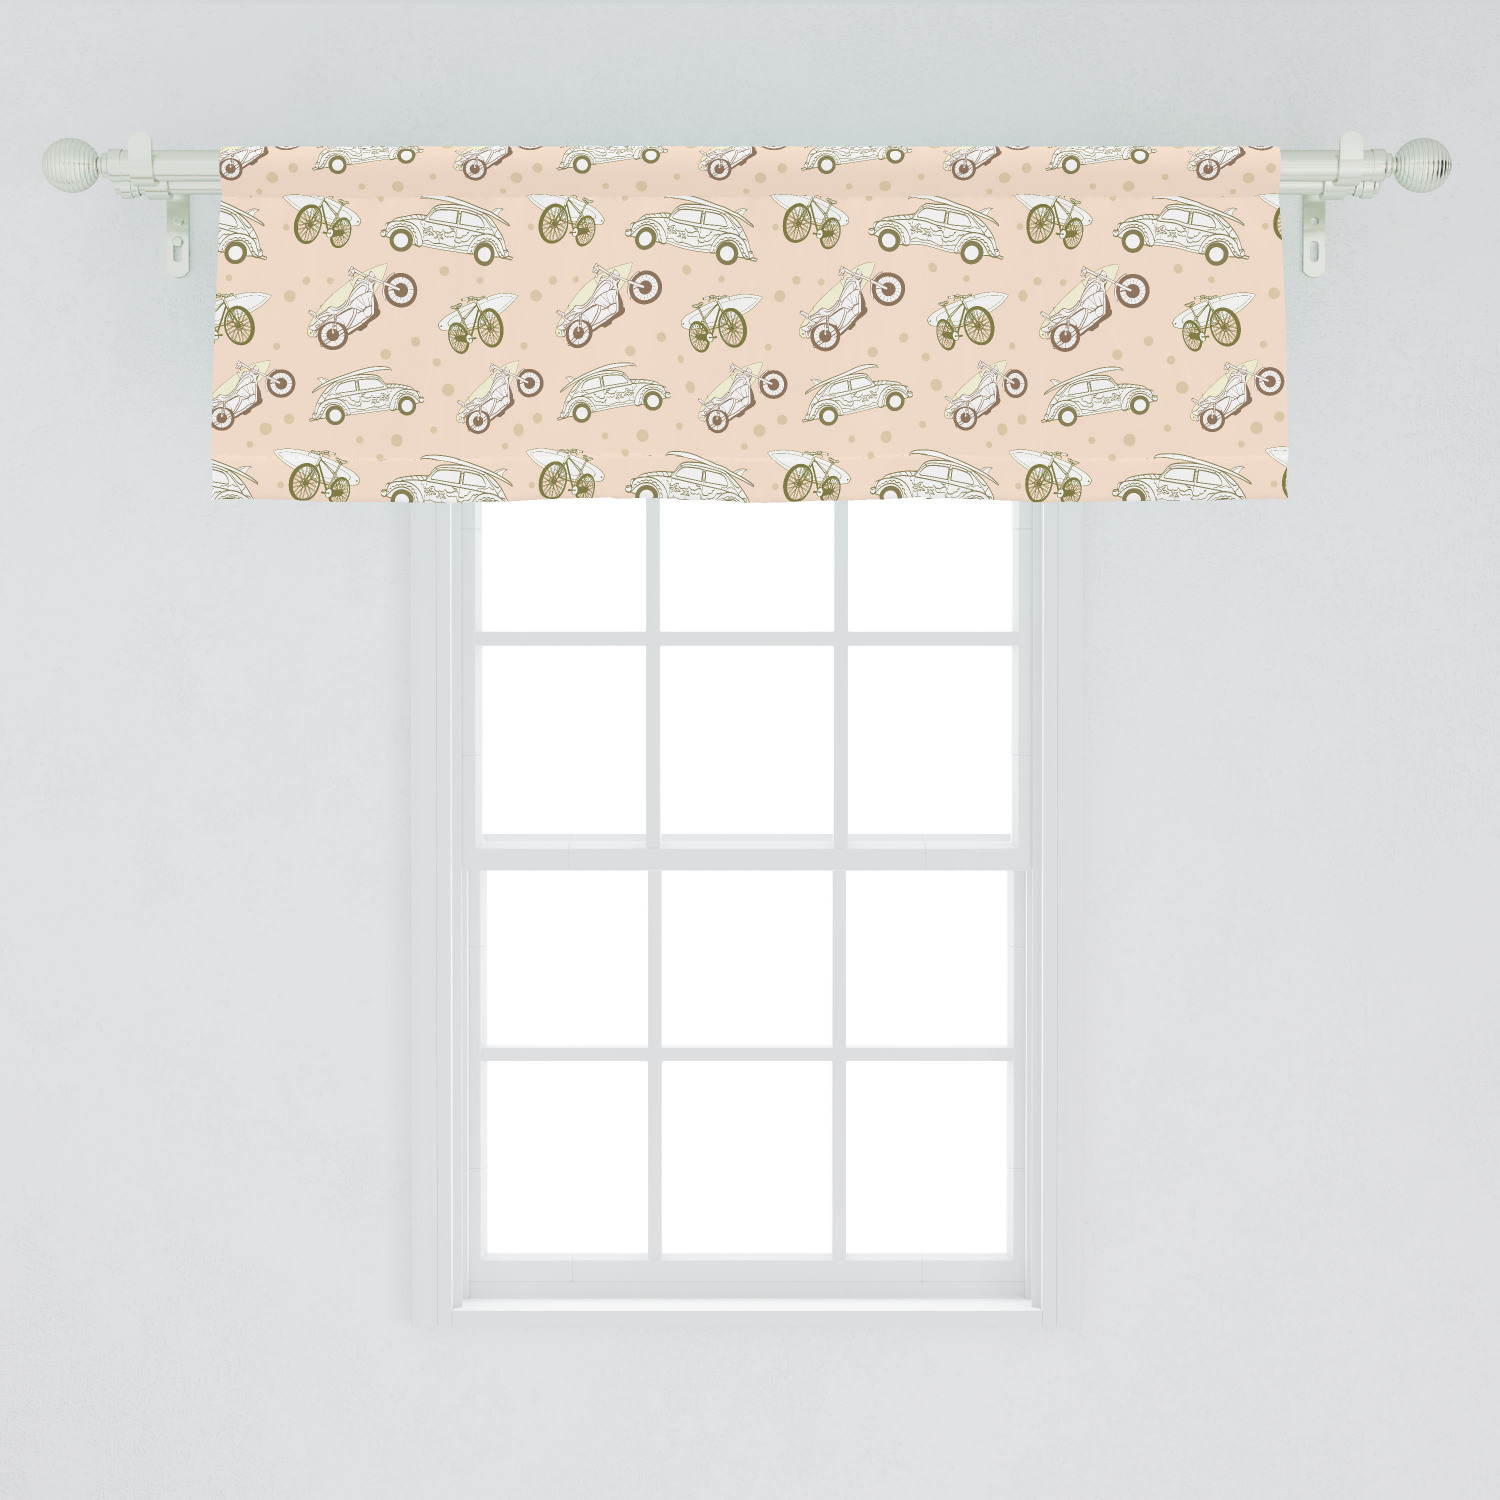 Surfboard Window Valance Surfboards Transported On Vehicles Cars Bikes Motorcycles California Curtain Valance For Kitchen Bedroom Decor With Rod Pocket By Ambesonne Walmart Com Walmart Com